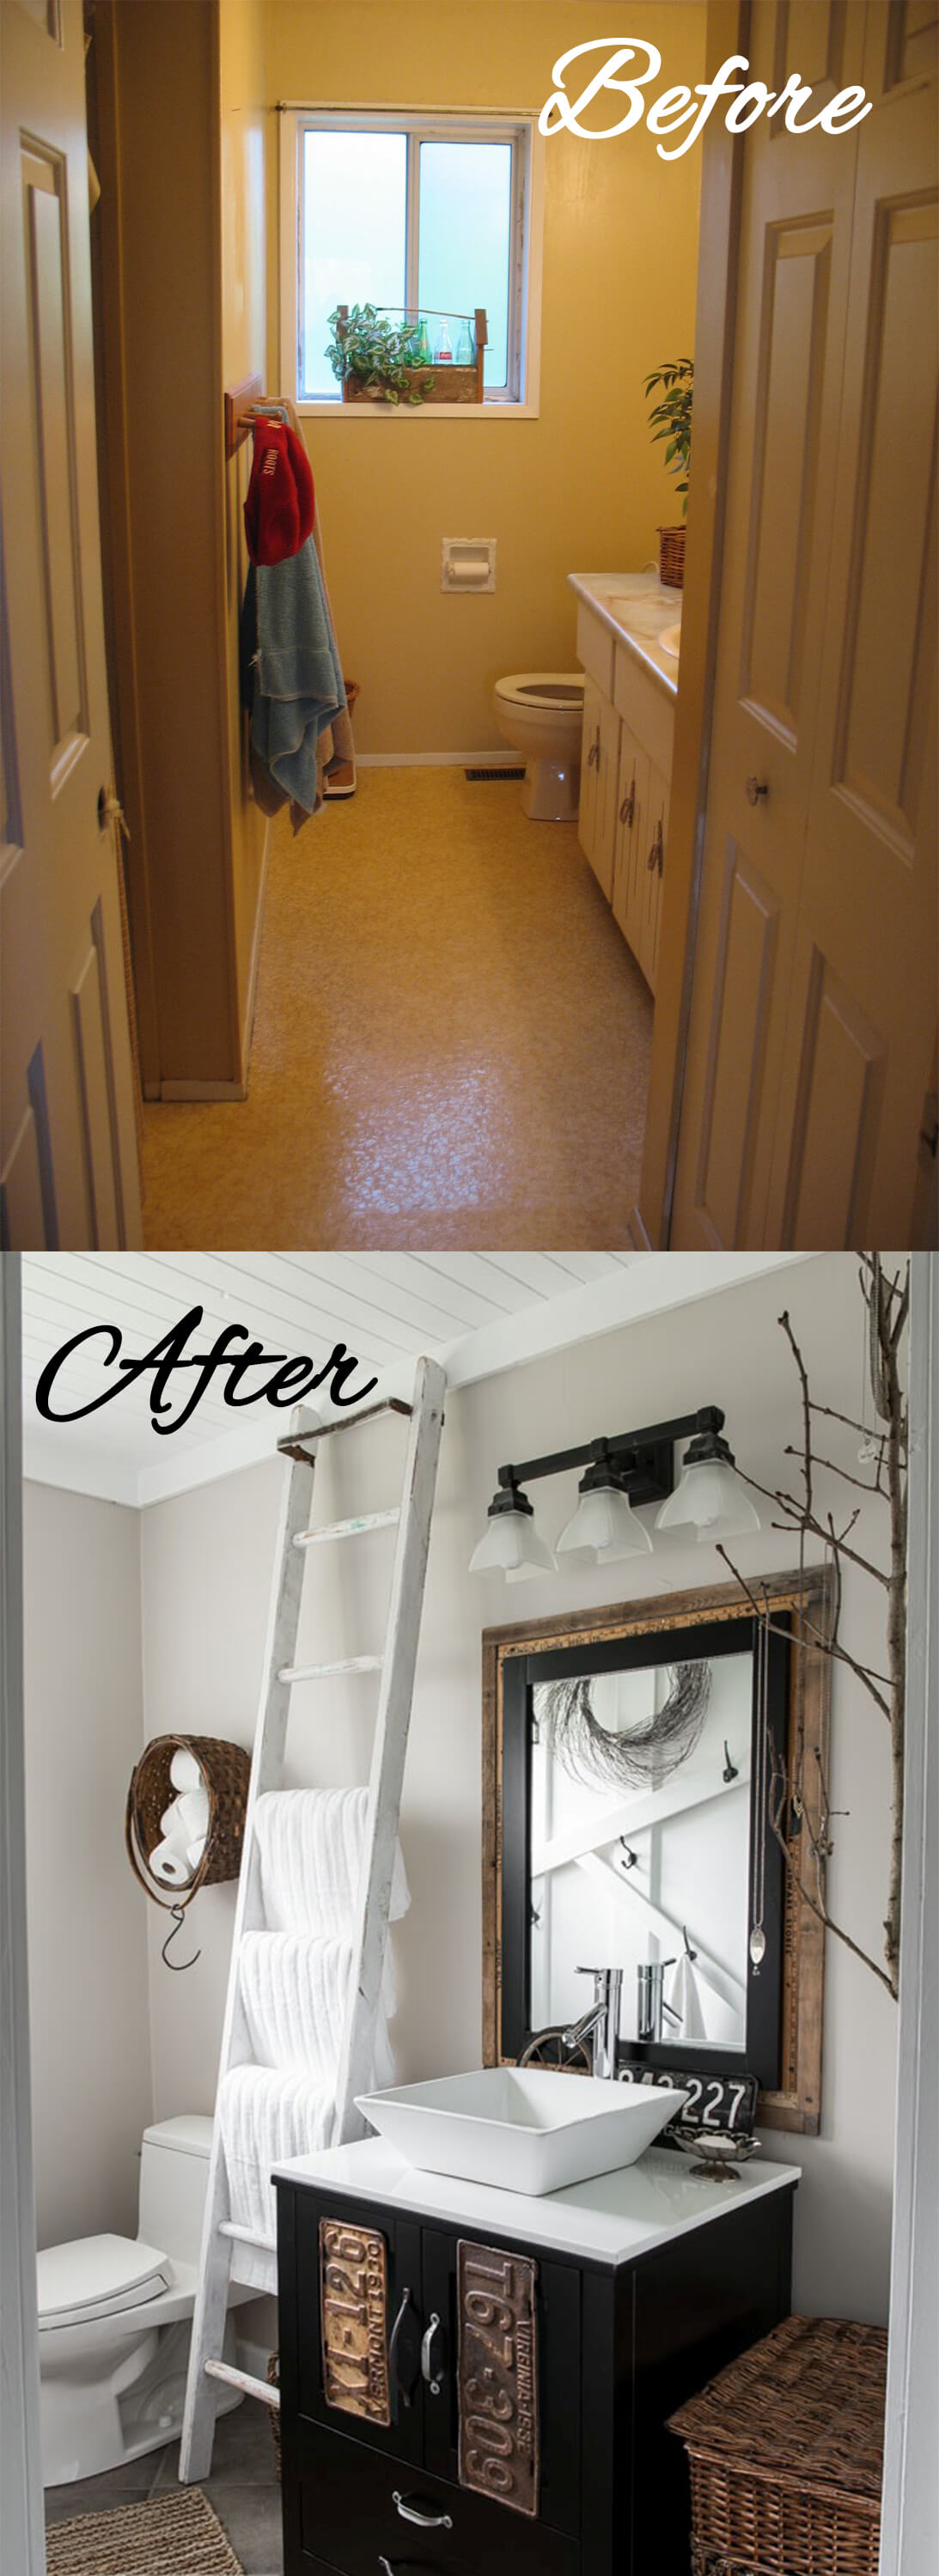 28 Best Budget Friendly Bathroom Makeover Ideas And